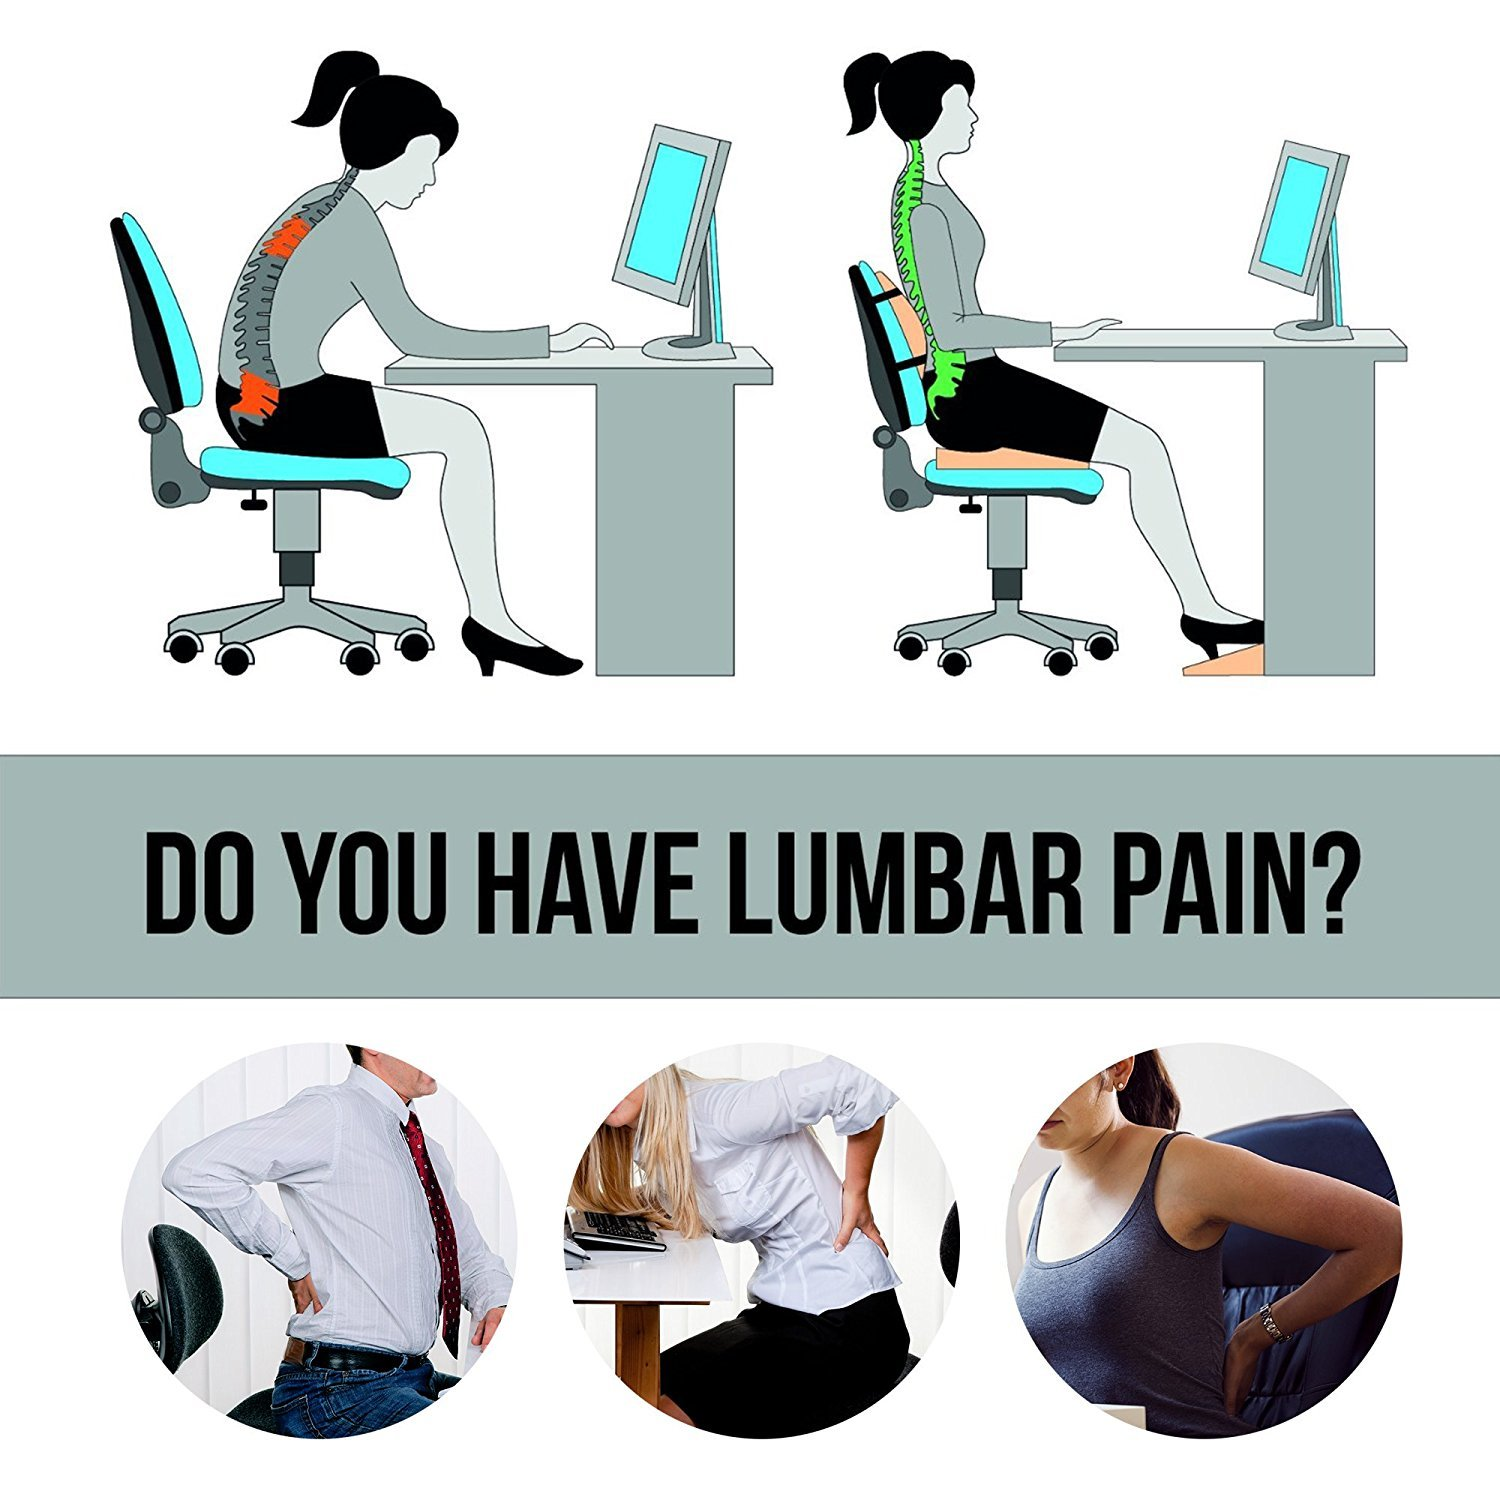 Lumbar Support Pillow Cushion, HOVERAREA Memory Foam Lower Back Pain Lumbar Pillow for Car, Office Chair - Improve Your Posture, Soft & Firm Lumbar Cushion with Adjustable Straps